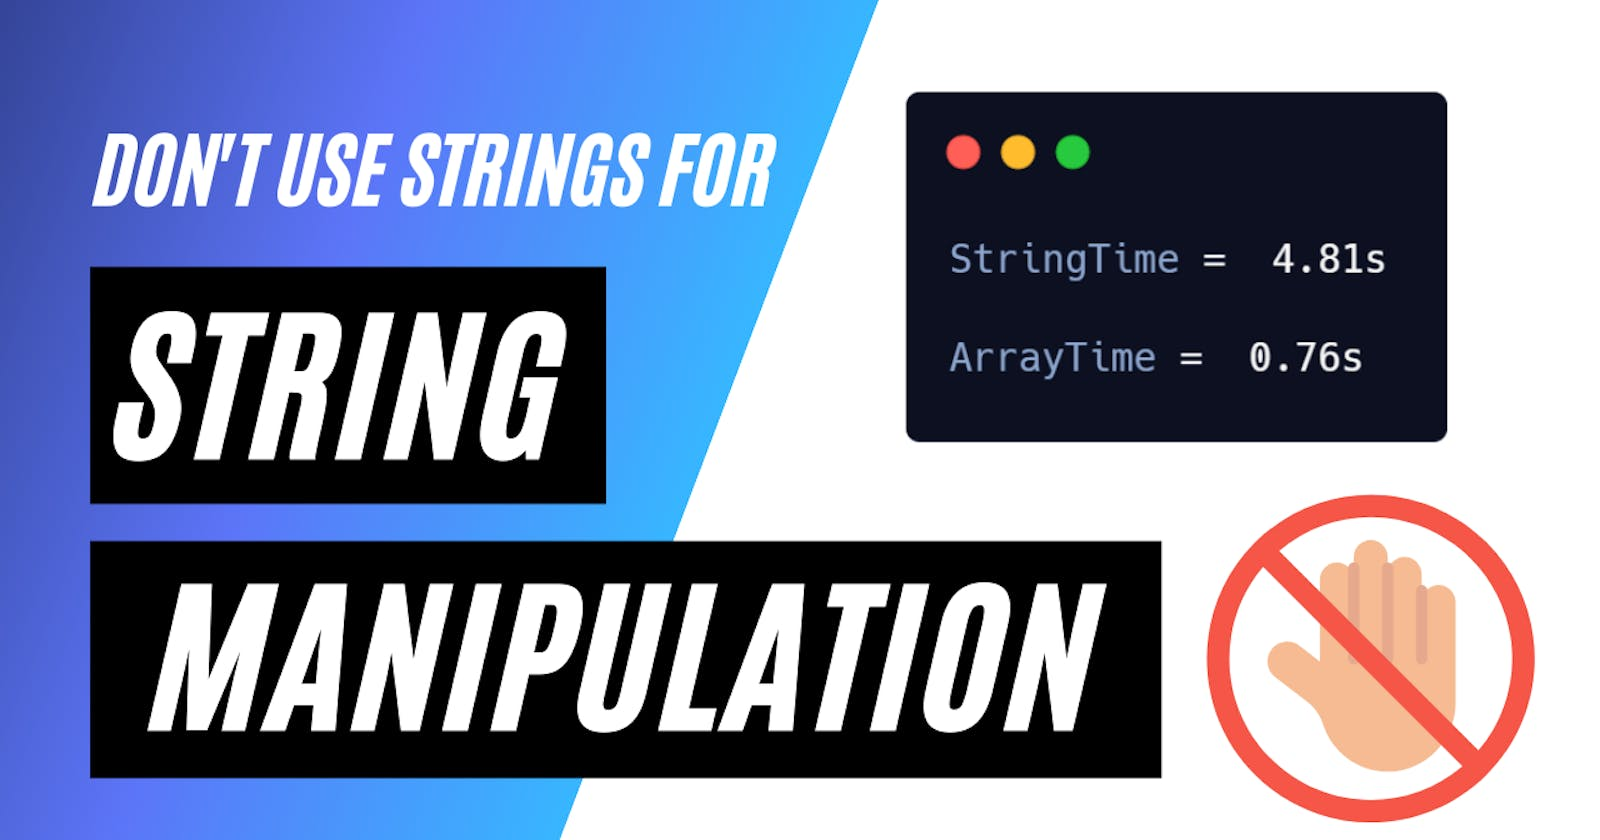 Strings are not efficient. Do your string manipulations effectively.